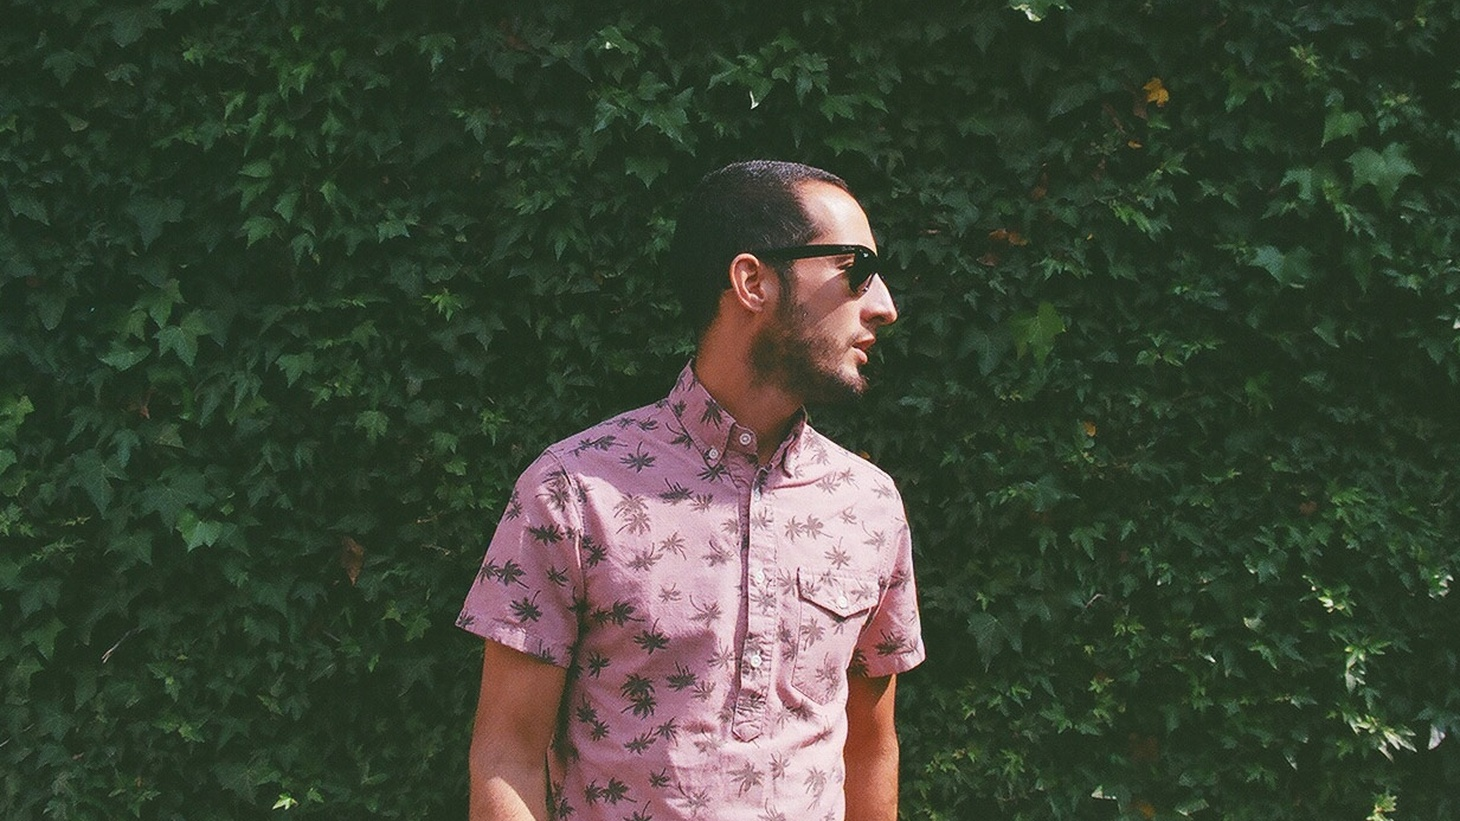 A native of Acapulco who resides in NYC, Marrón wrote his debut album while traveling.